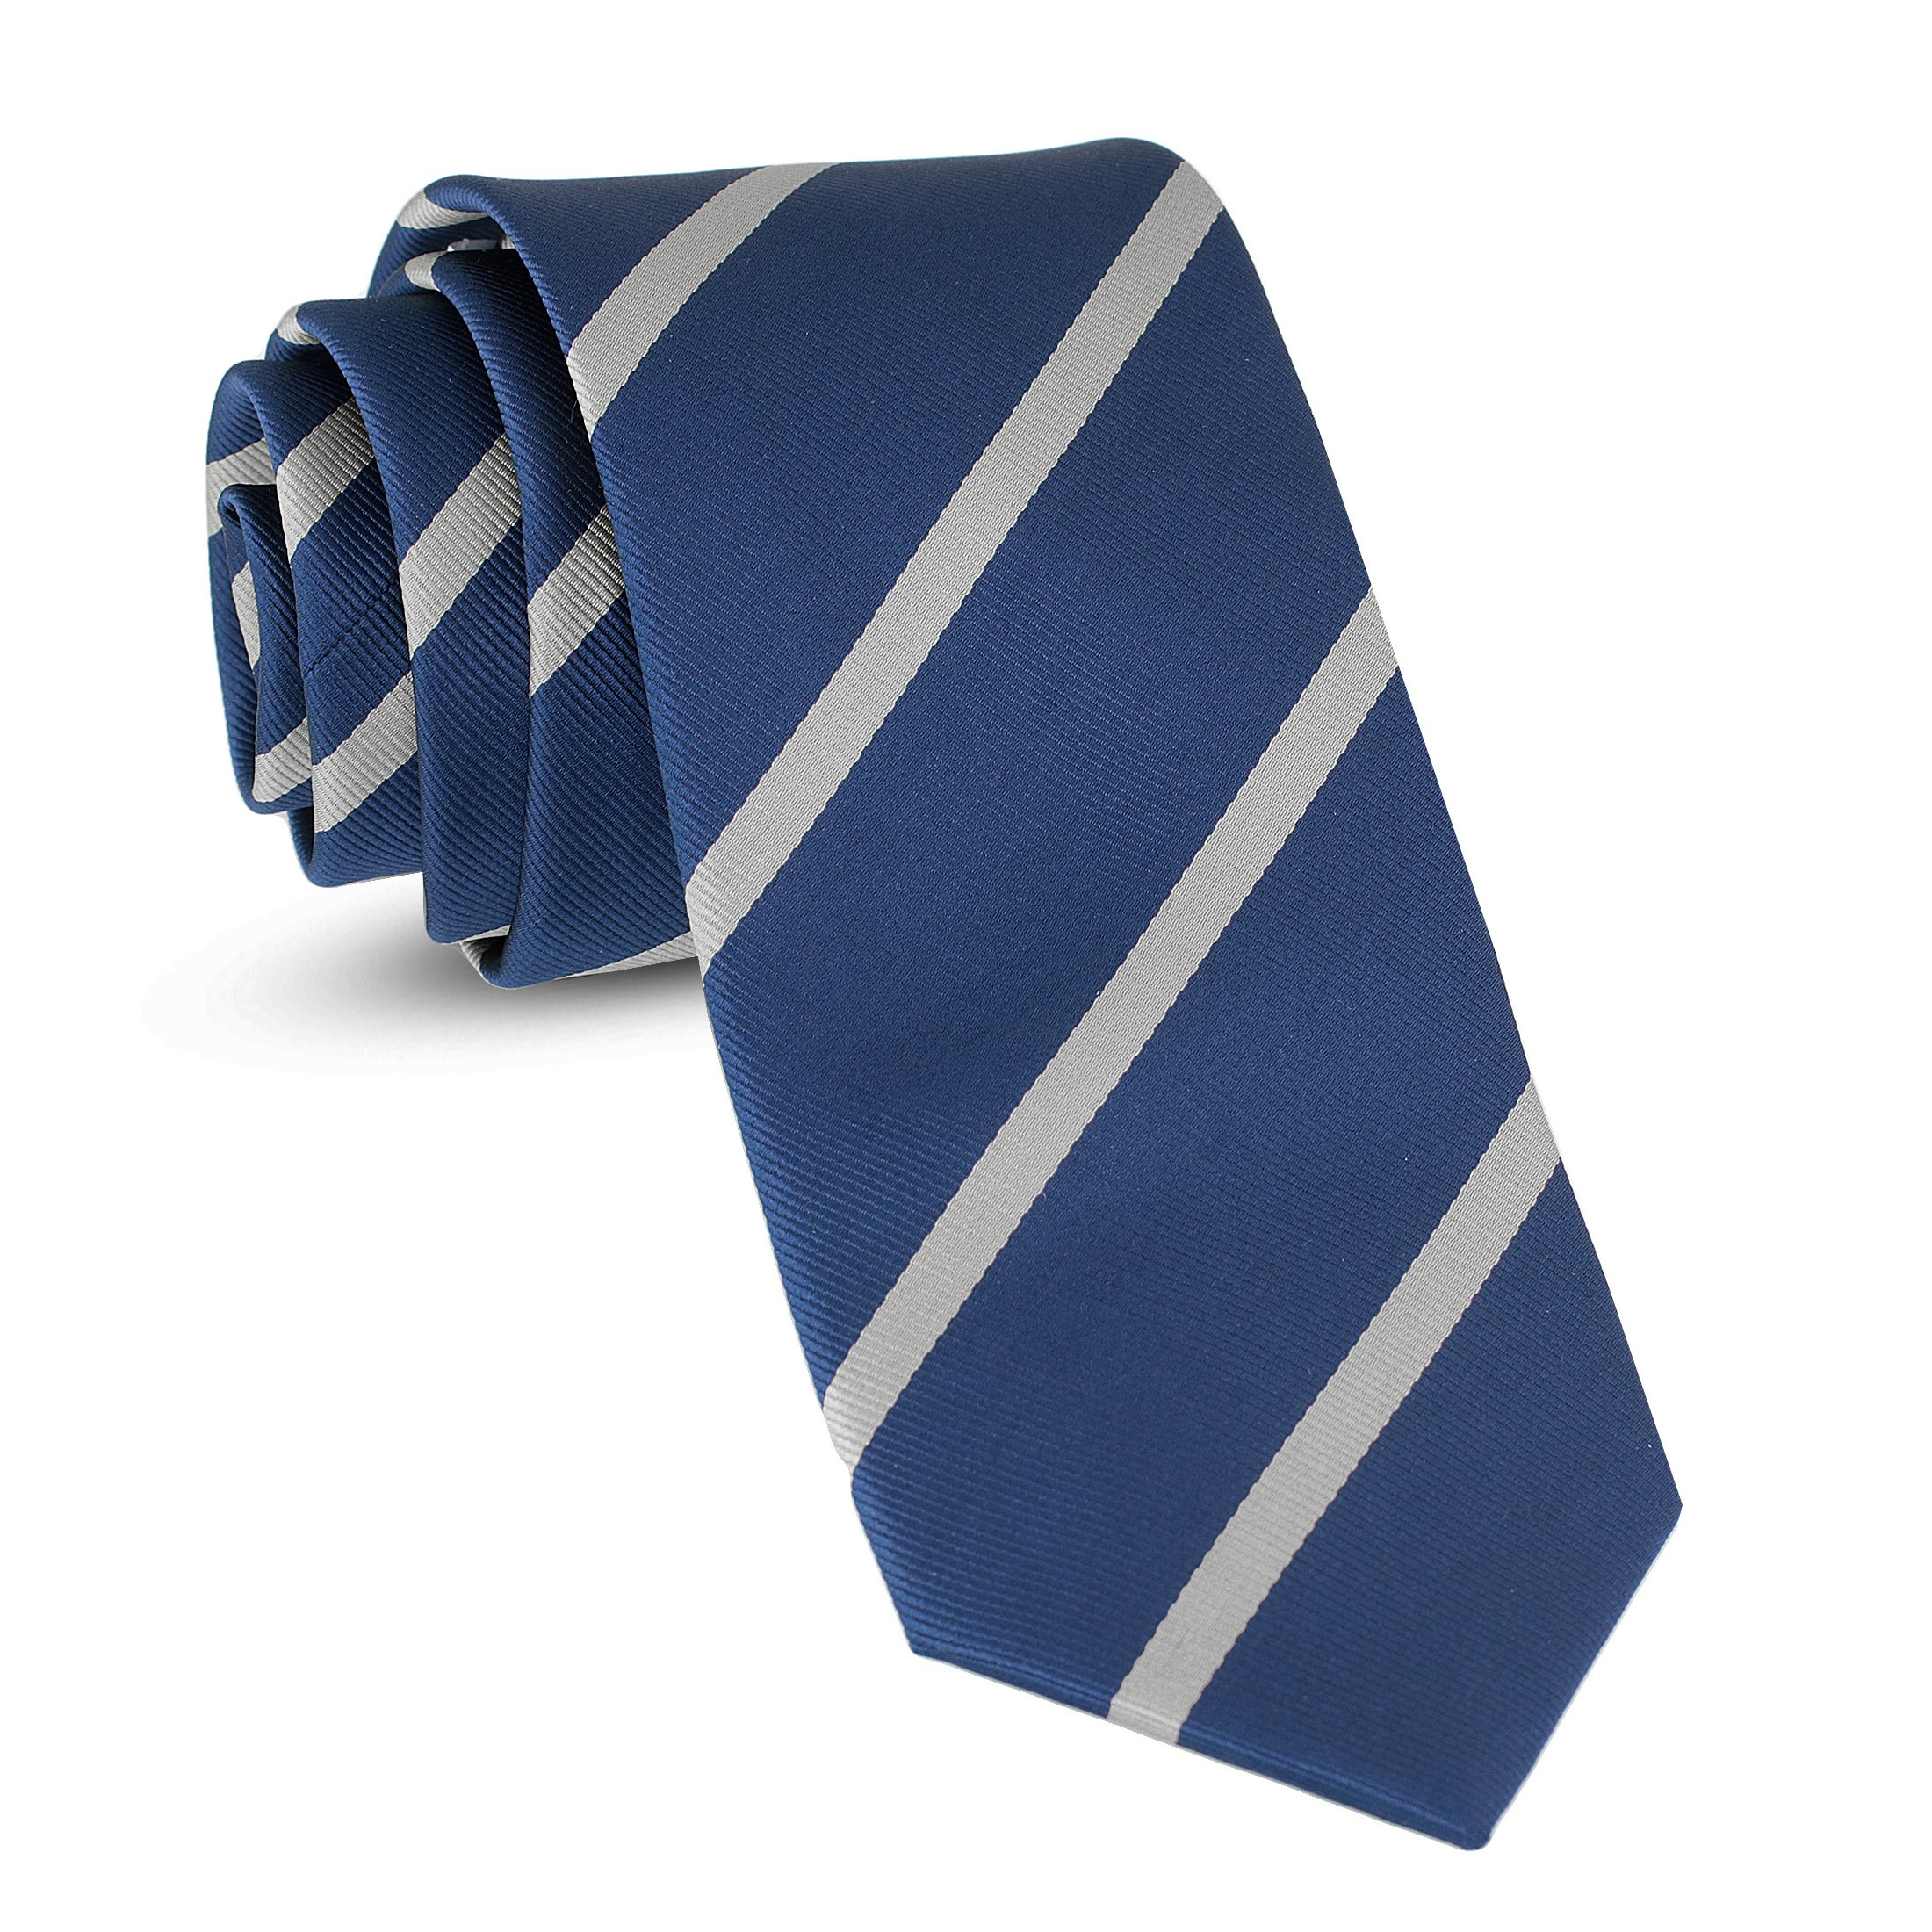 Handmade Striped Ties For Men Skinny Woven Slim Rep Navy Blue & White Mens Stripes Tie: Thin Necktie, Stylish Neckties For Every Outfit